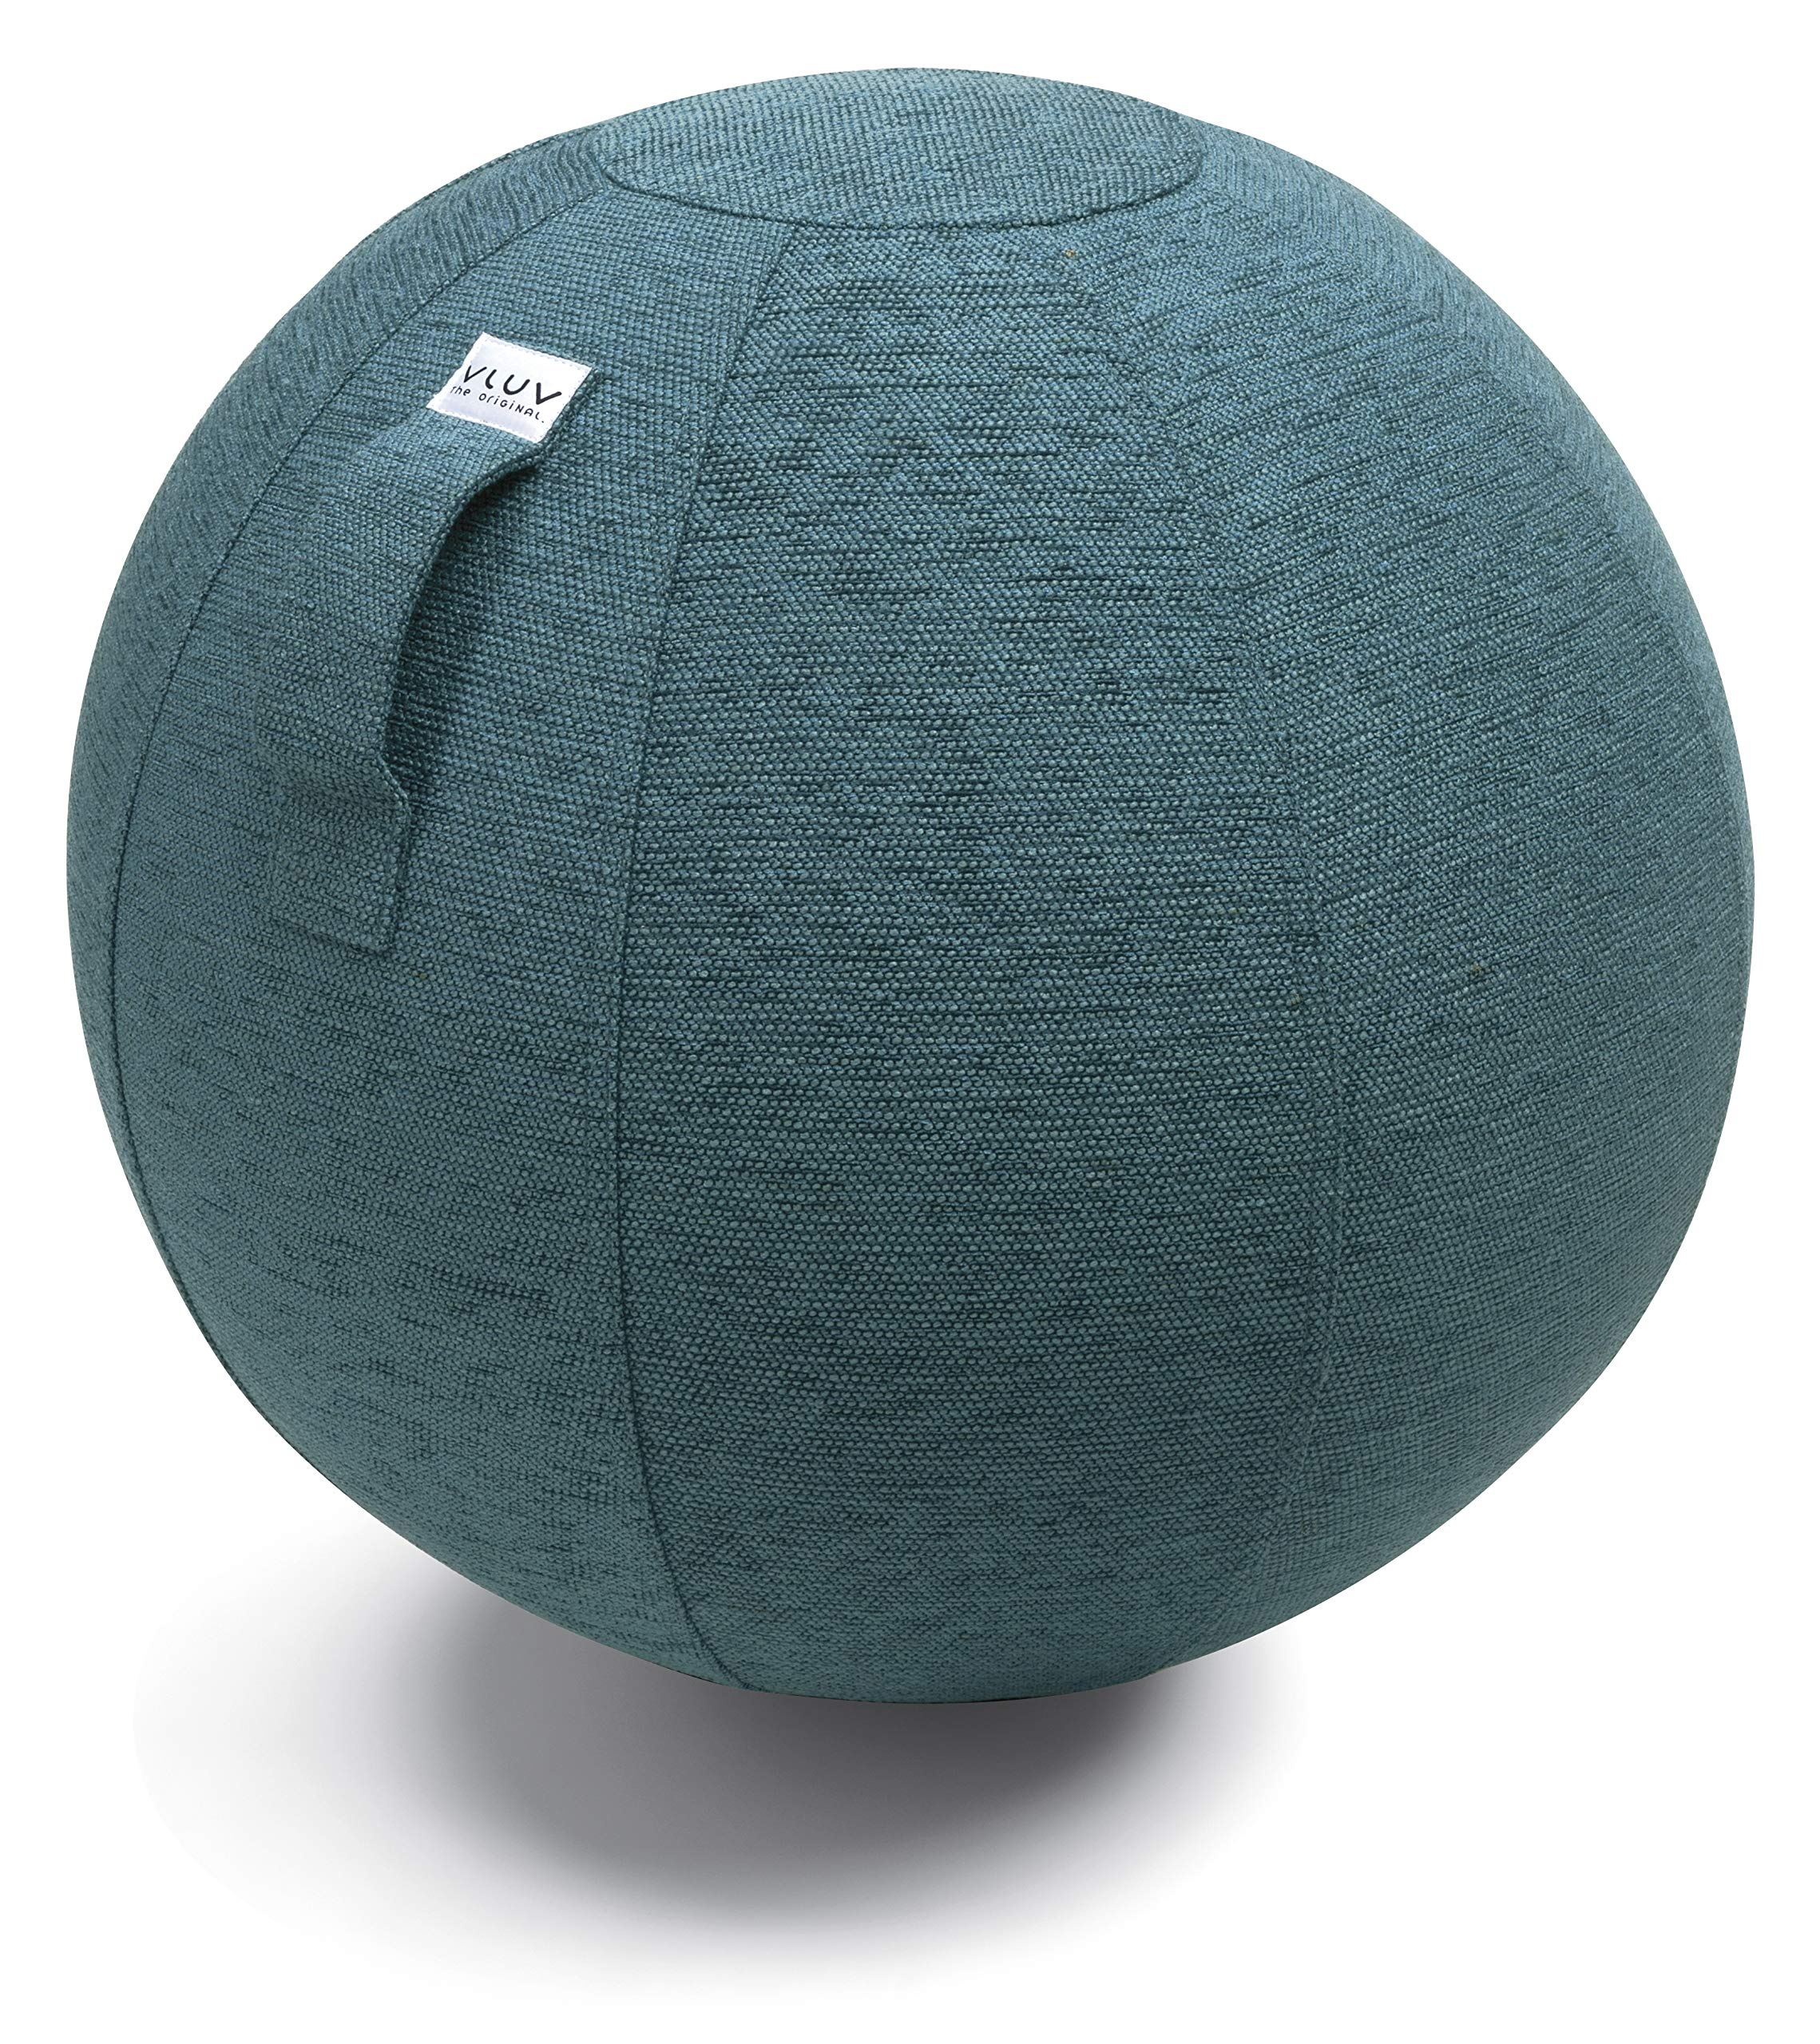 VLUV STOV Premium Quality Self-Standing Sitting Ball with Handle - Home or Office Chair and Exercise Ball for Yoga, Back Stretching, or Gym- Upholstery Fabric Stability Ball (Petrol, 25.6'')